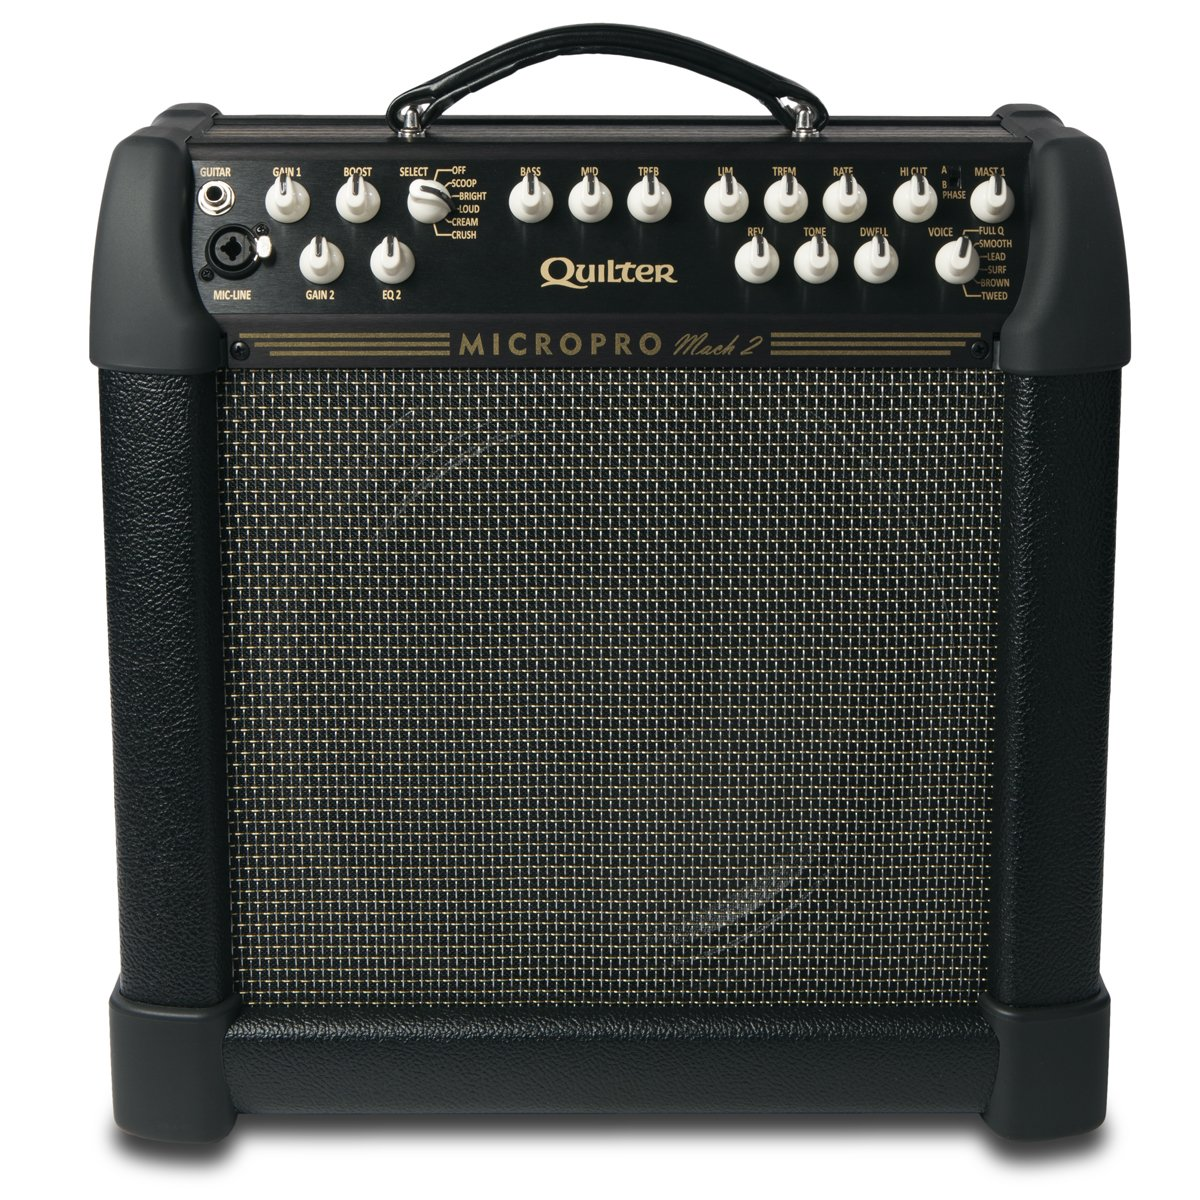 Quilter MicroPro Mach 2 12 inch Combo